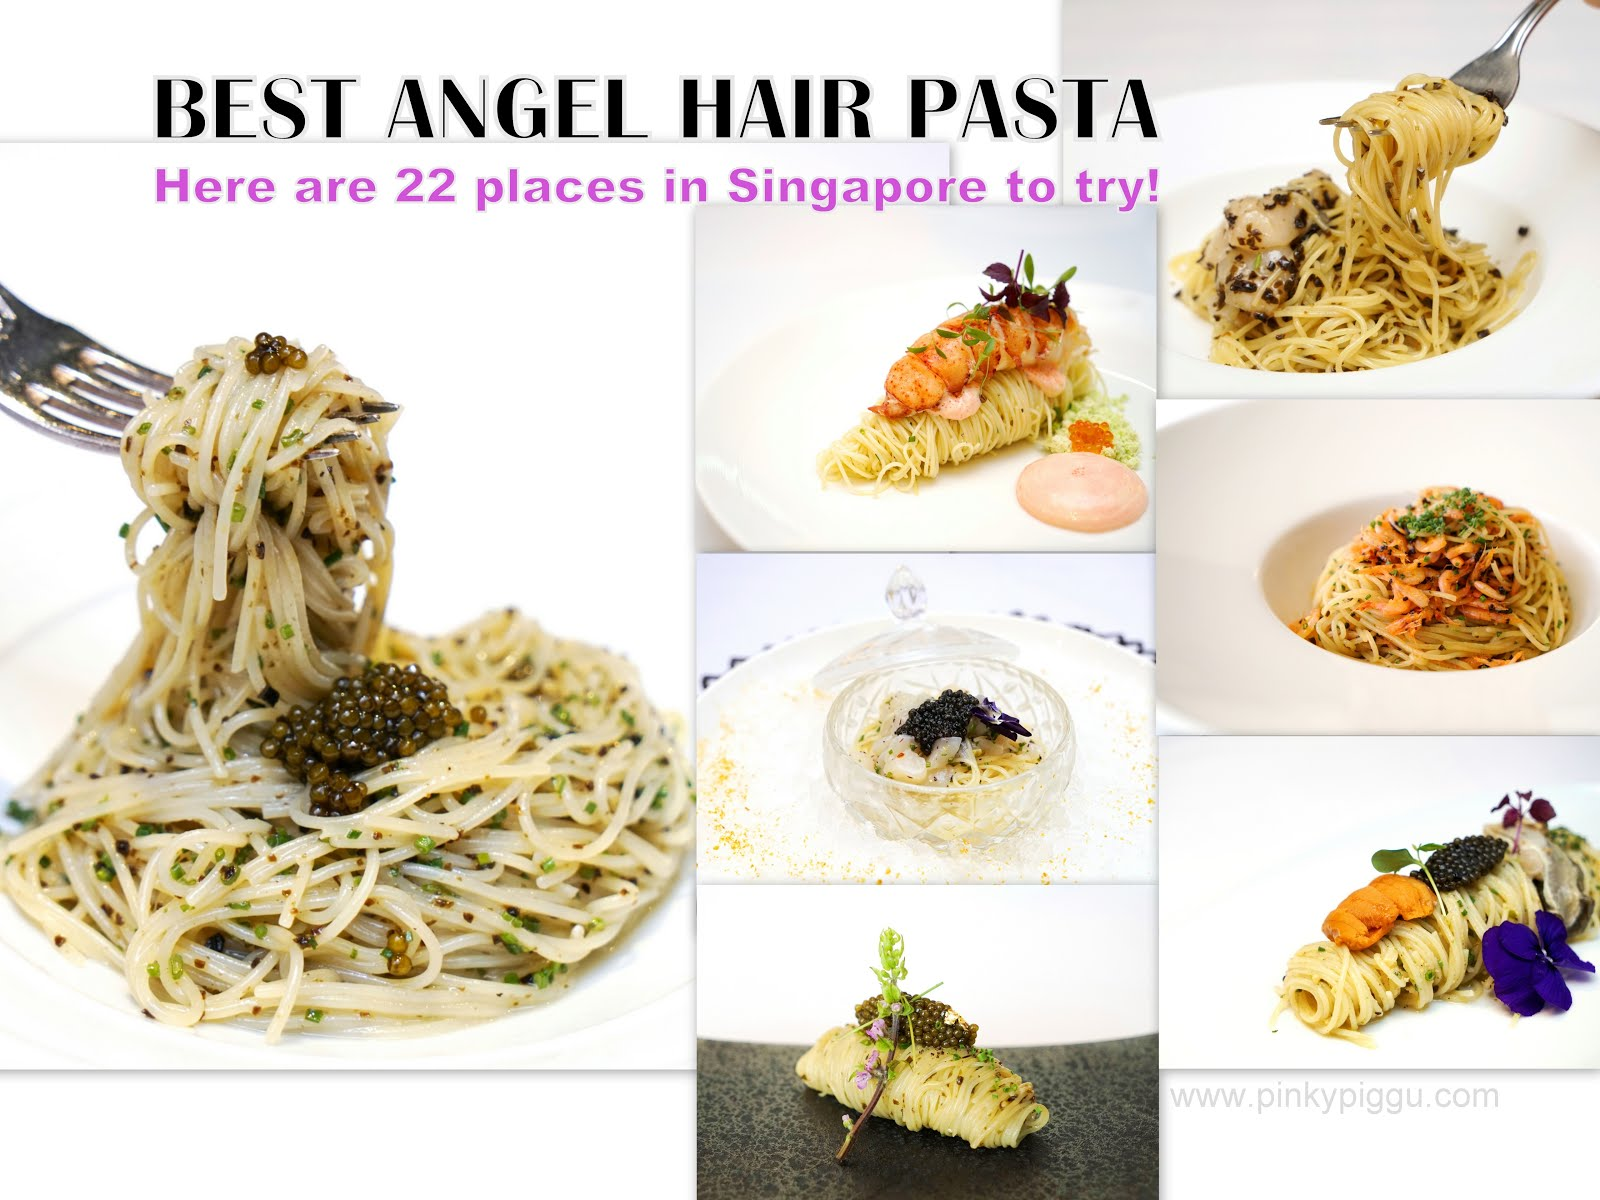 BEST ANGEL HAIR PASTA! Here are 22 places in Singapore to try!